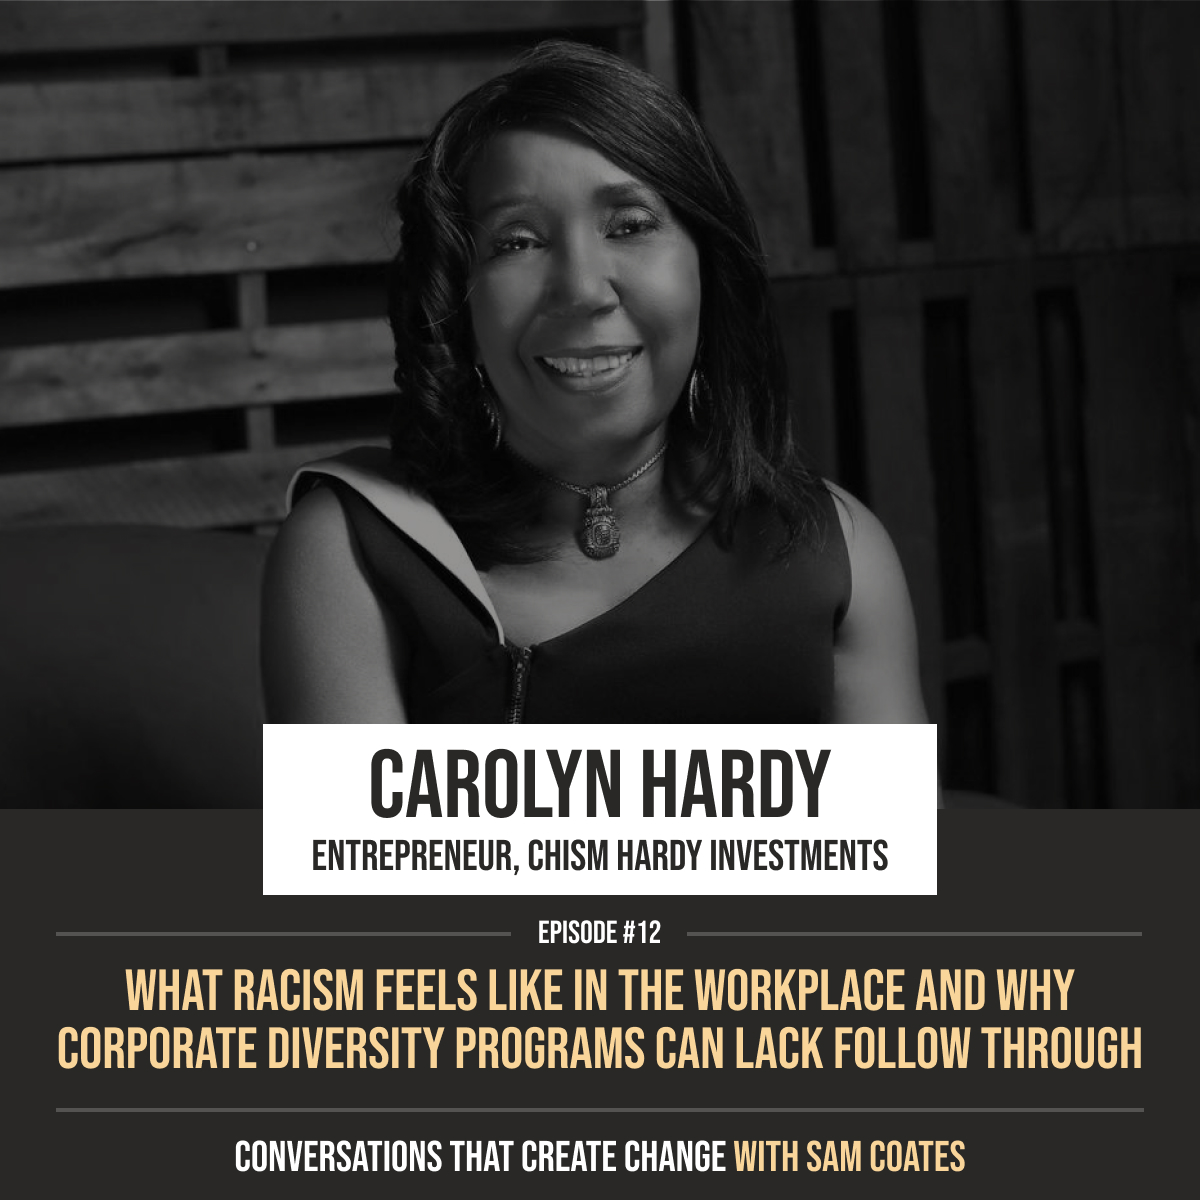 Carolyn Hardy | What Racism Feels Like the Workplace and Why Corporate Diversity Programs Can Lack Follow Through